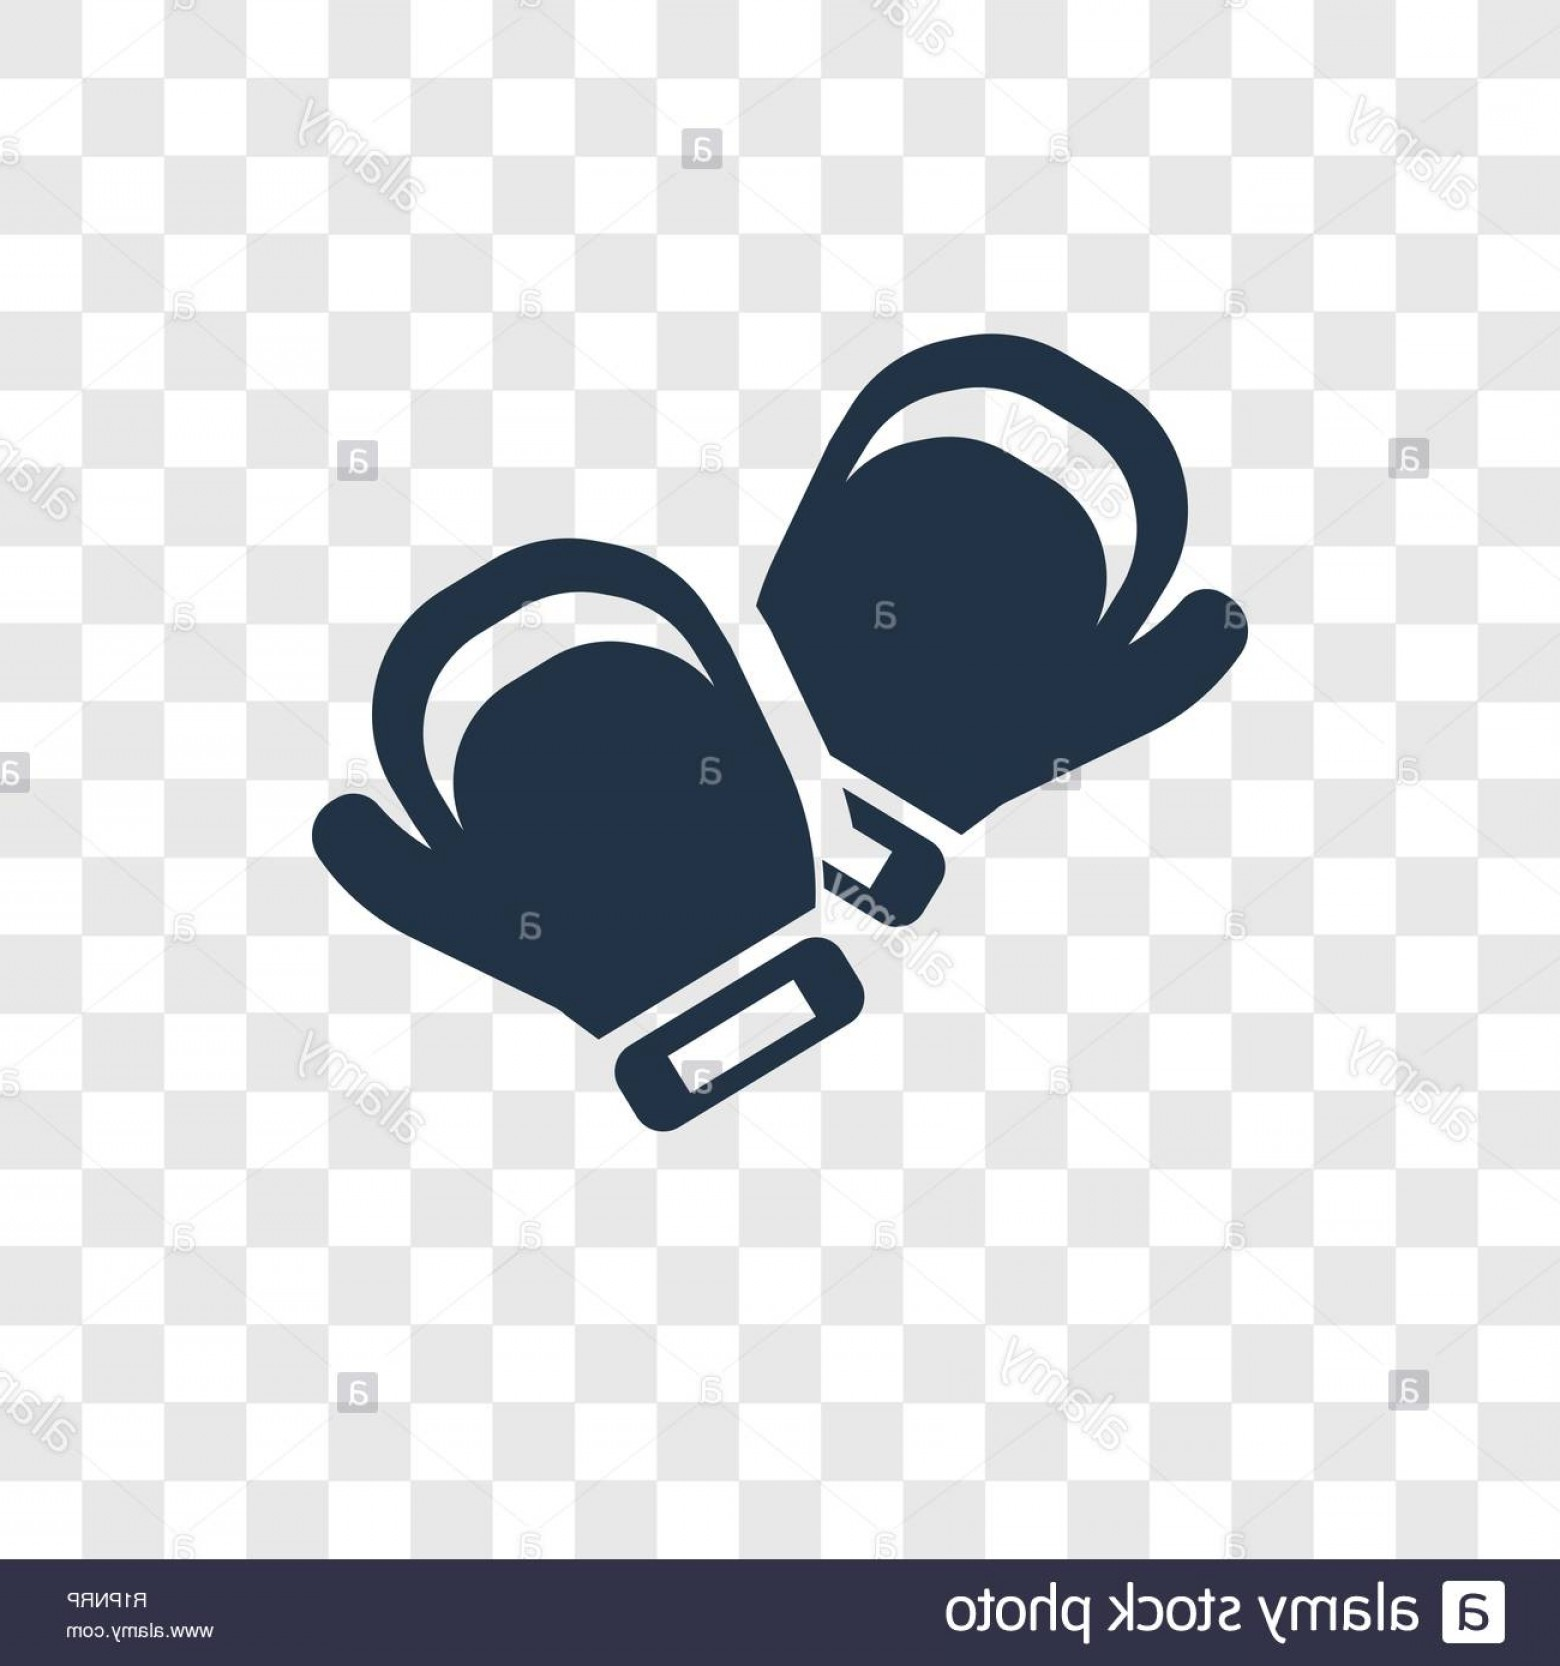 Pictures Of Boxing Gloves Vector Art: Boxing Gloves Vector Icon Isolated On Transparent Background Boxing Gloves Transparency Logo Concept Image